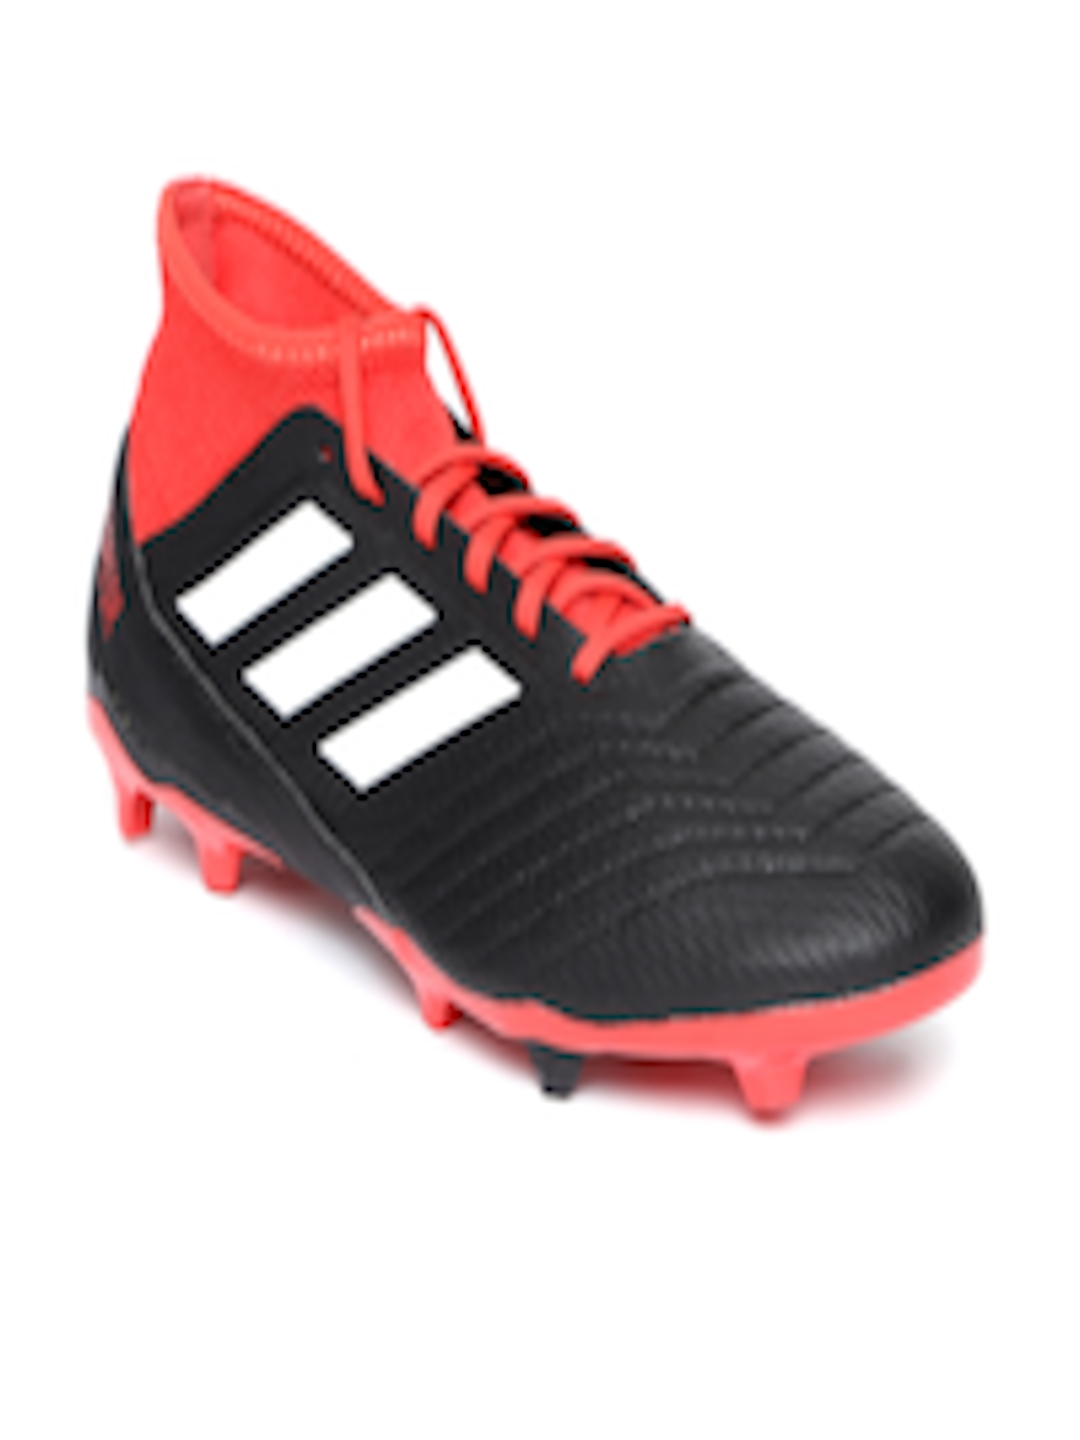 innovative design 4456f b97c6 Buy ADIDAS Men Black   Red Predator 18.3 Firm Ground Football Shoes -  Sports Shoes for Men 6842210   Myntra